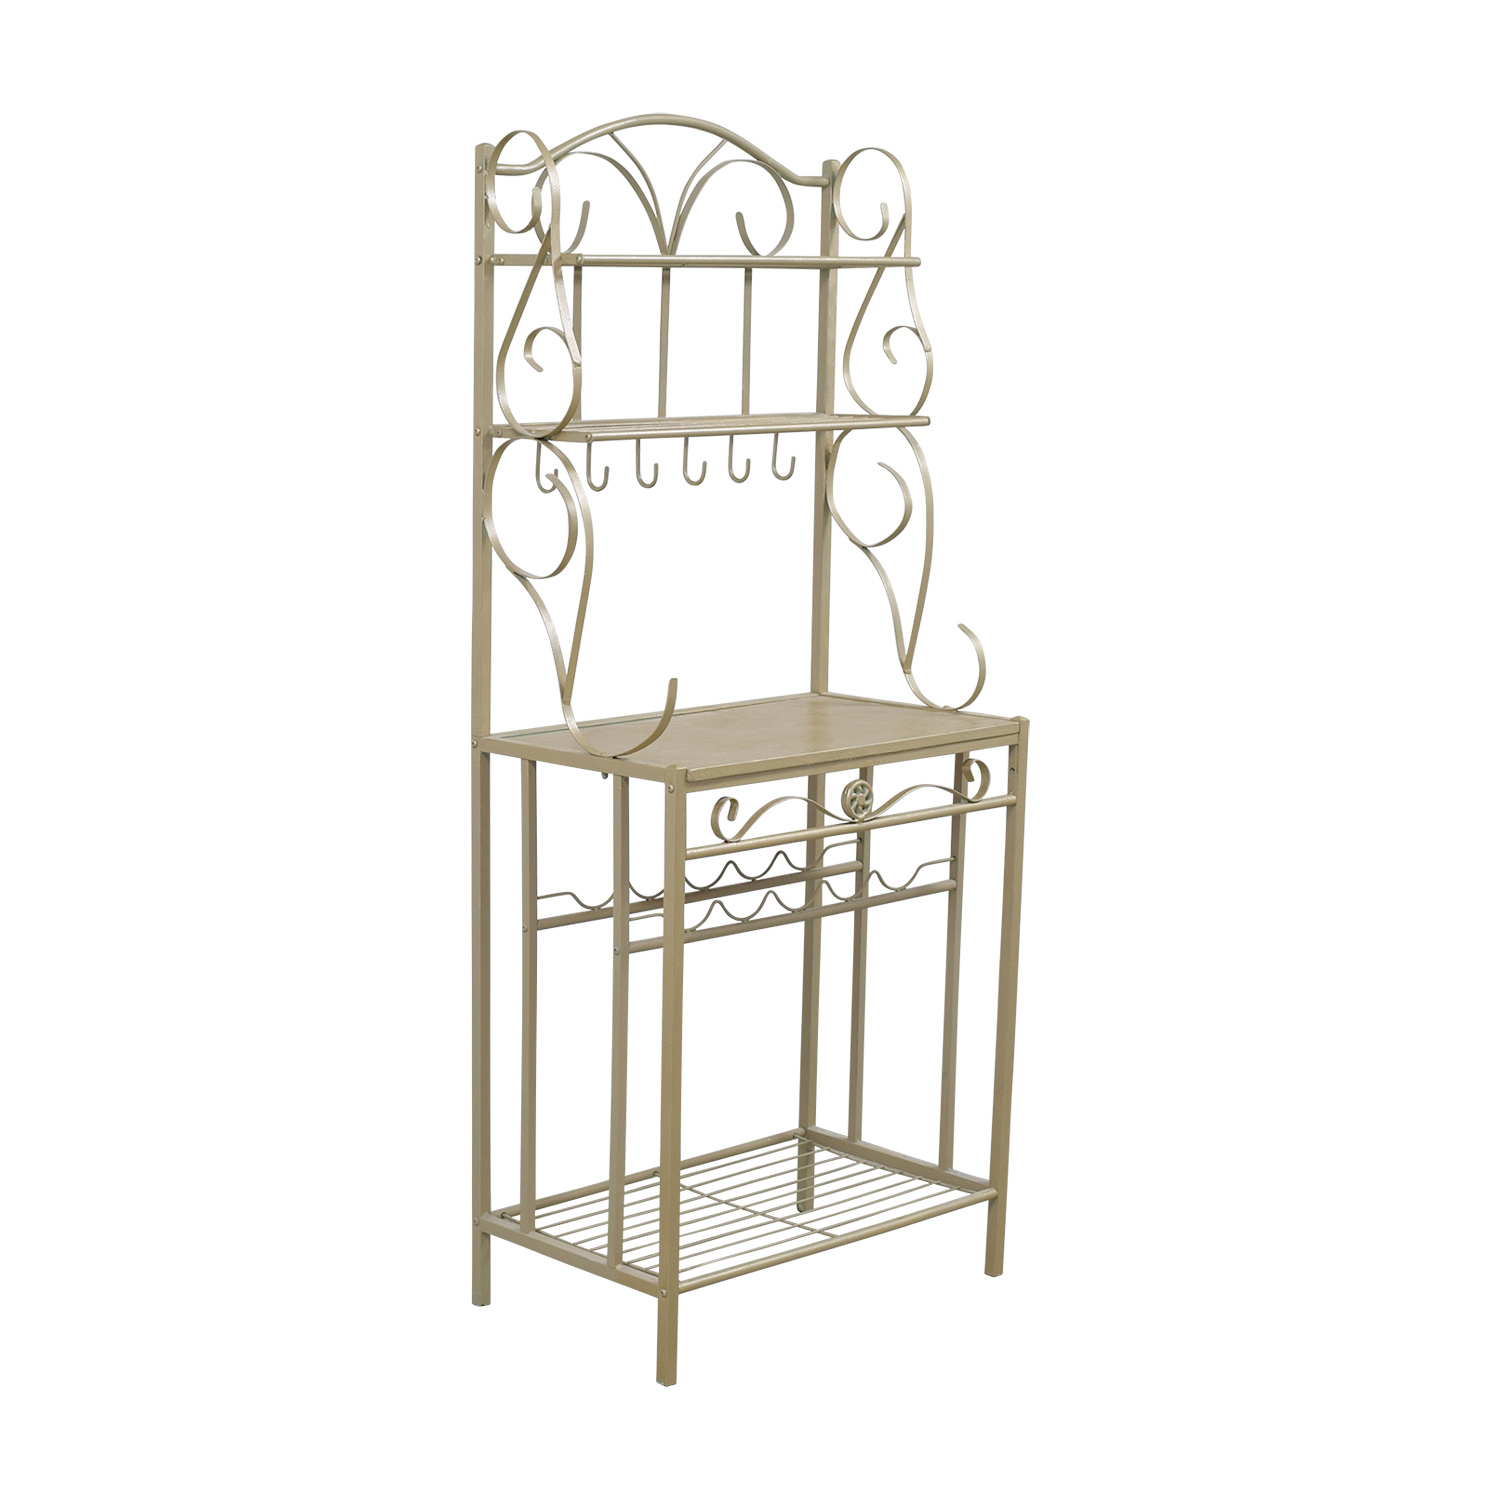 Gold Bakers Rack / Bookcases & Shelving